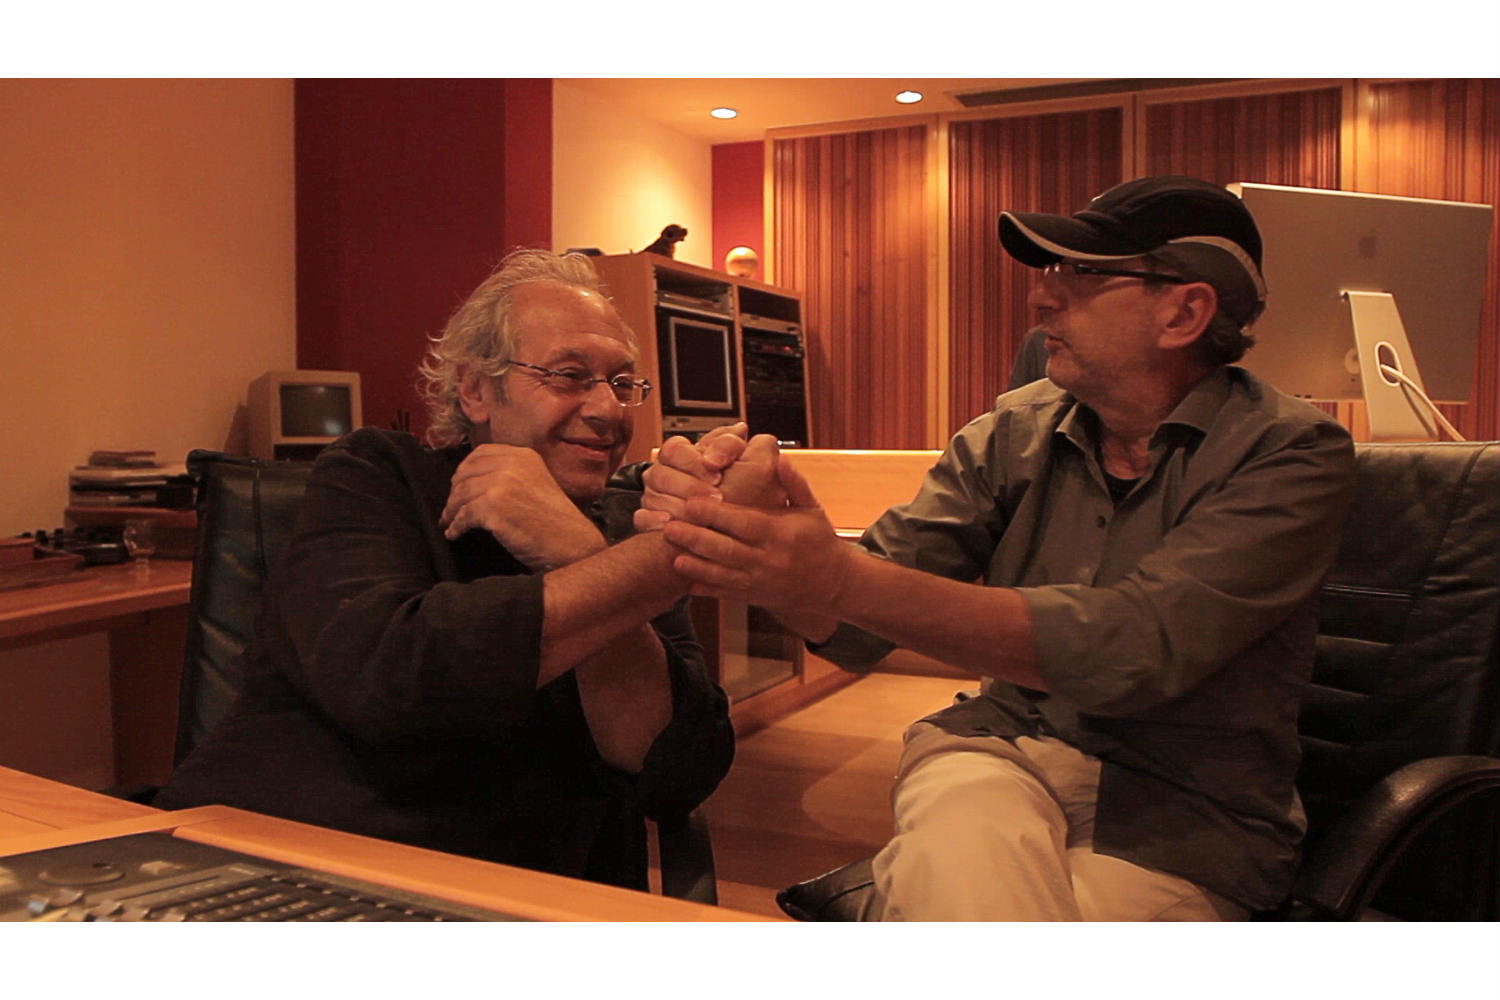 Daniel Tarrab & Andres Goldstein, founders of Swing Music Argentina and AGDT Film Music. Studio design by WSDG